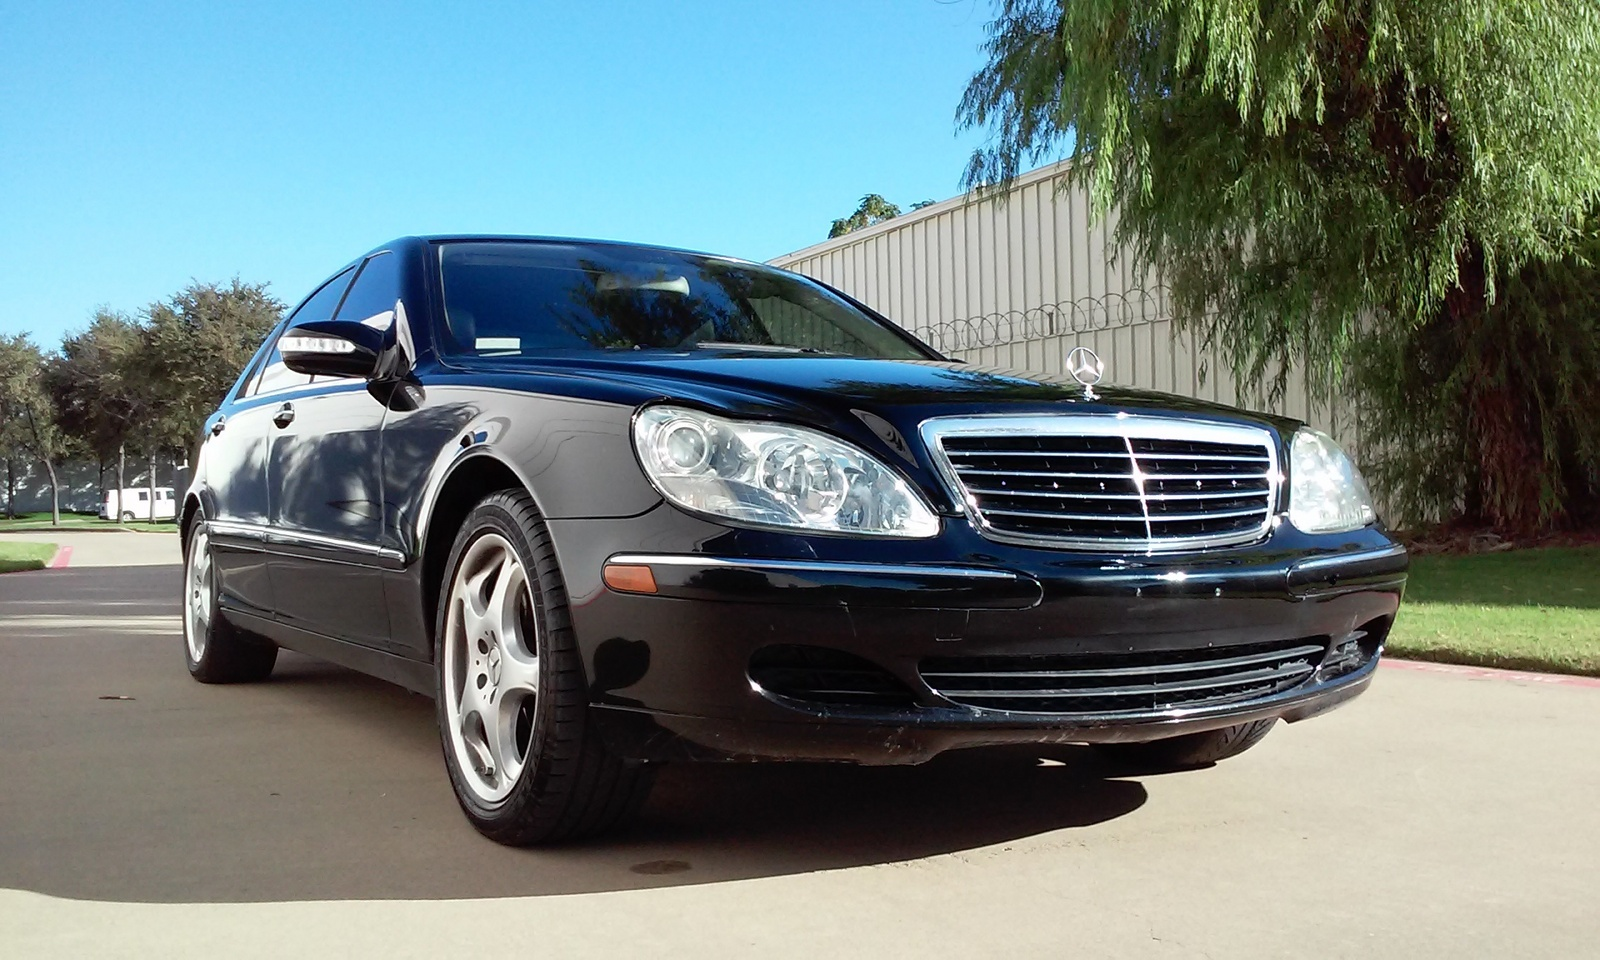 2005 mercedes benz s class pictures cargurus for S430 mercedes benz